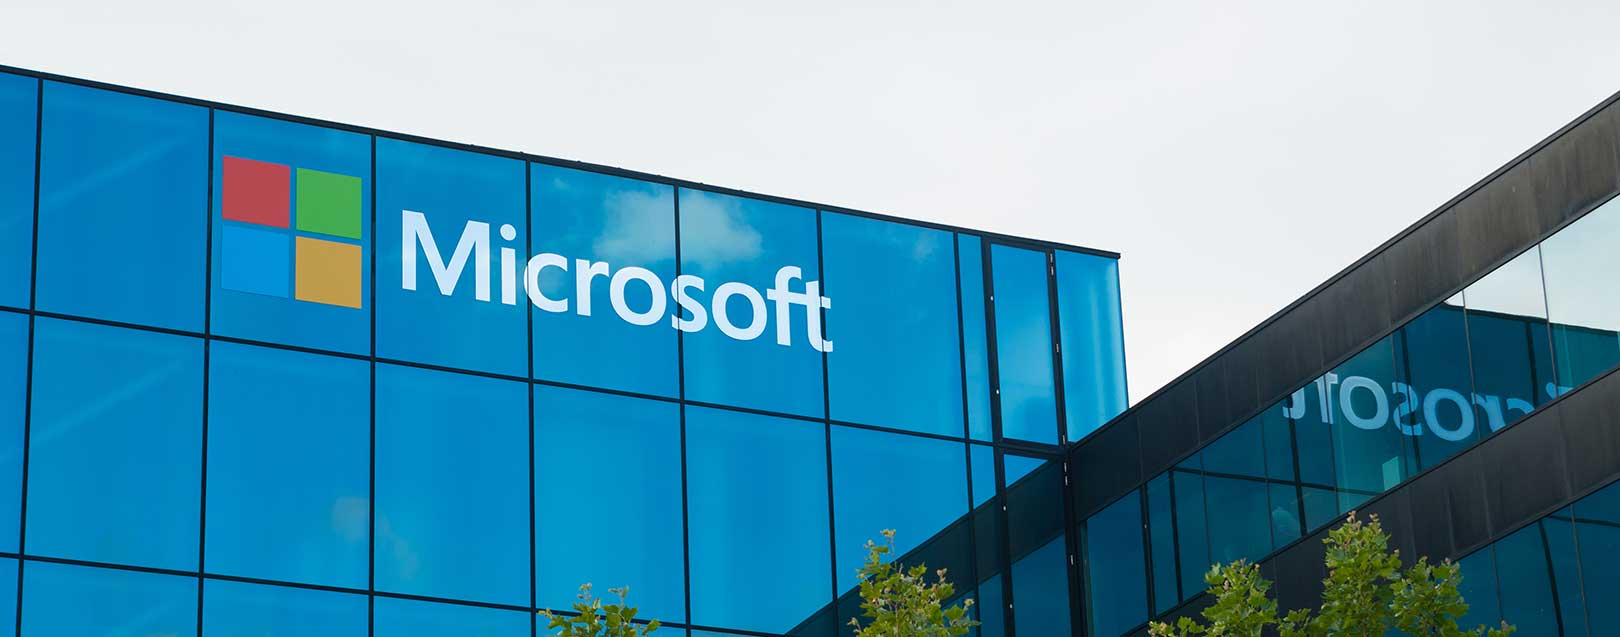 Jharkhand signs MoU with Microsoft to leverage the cloud technology